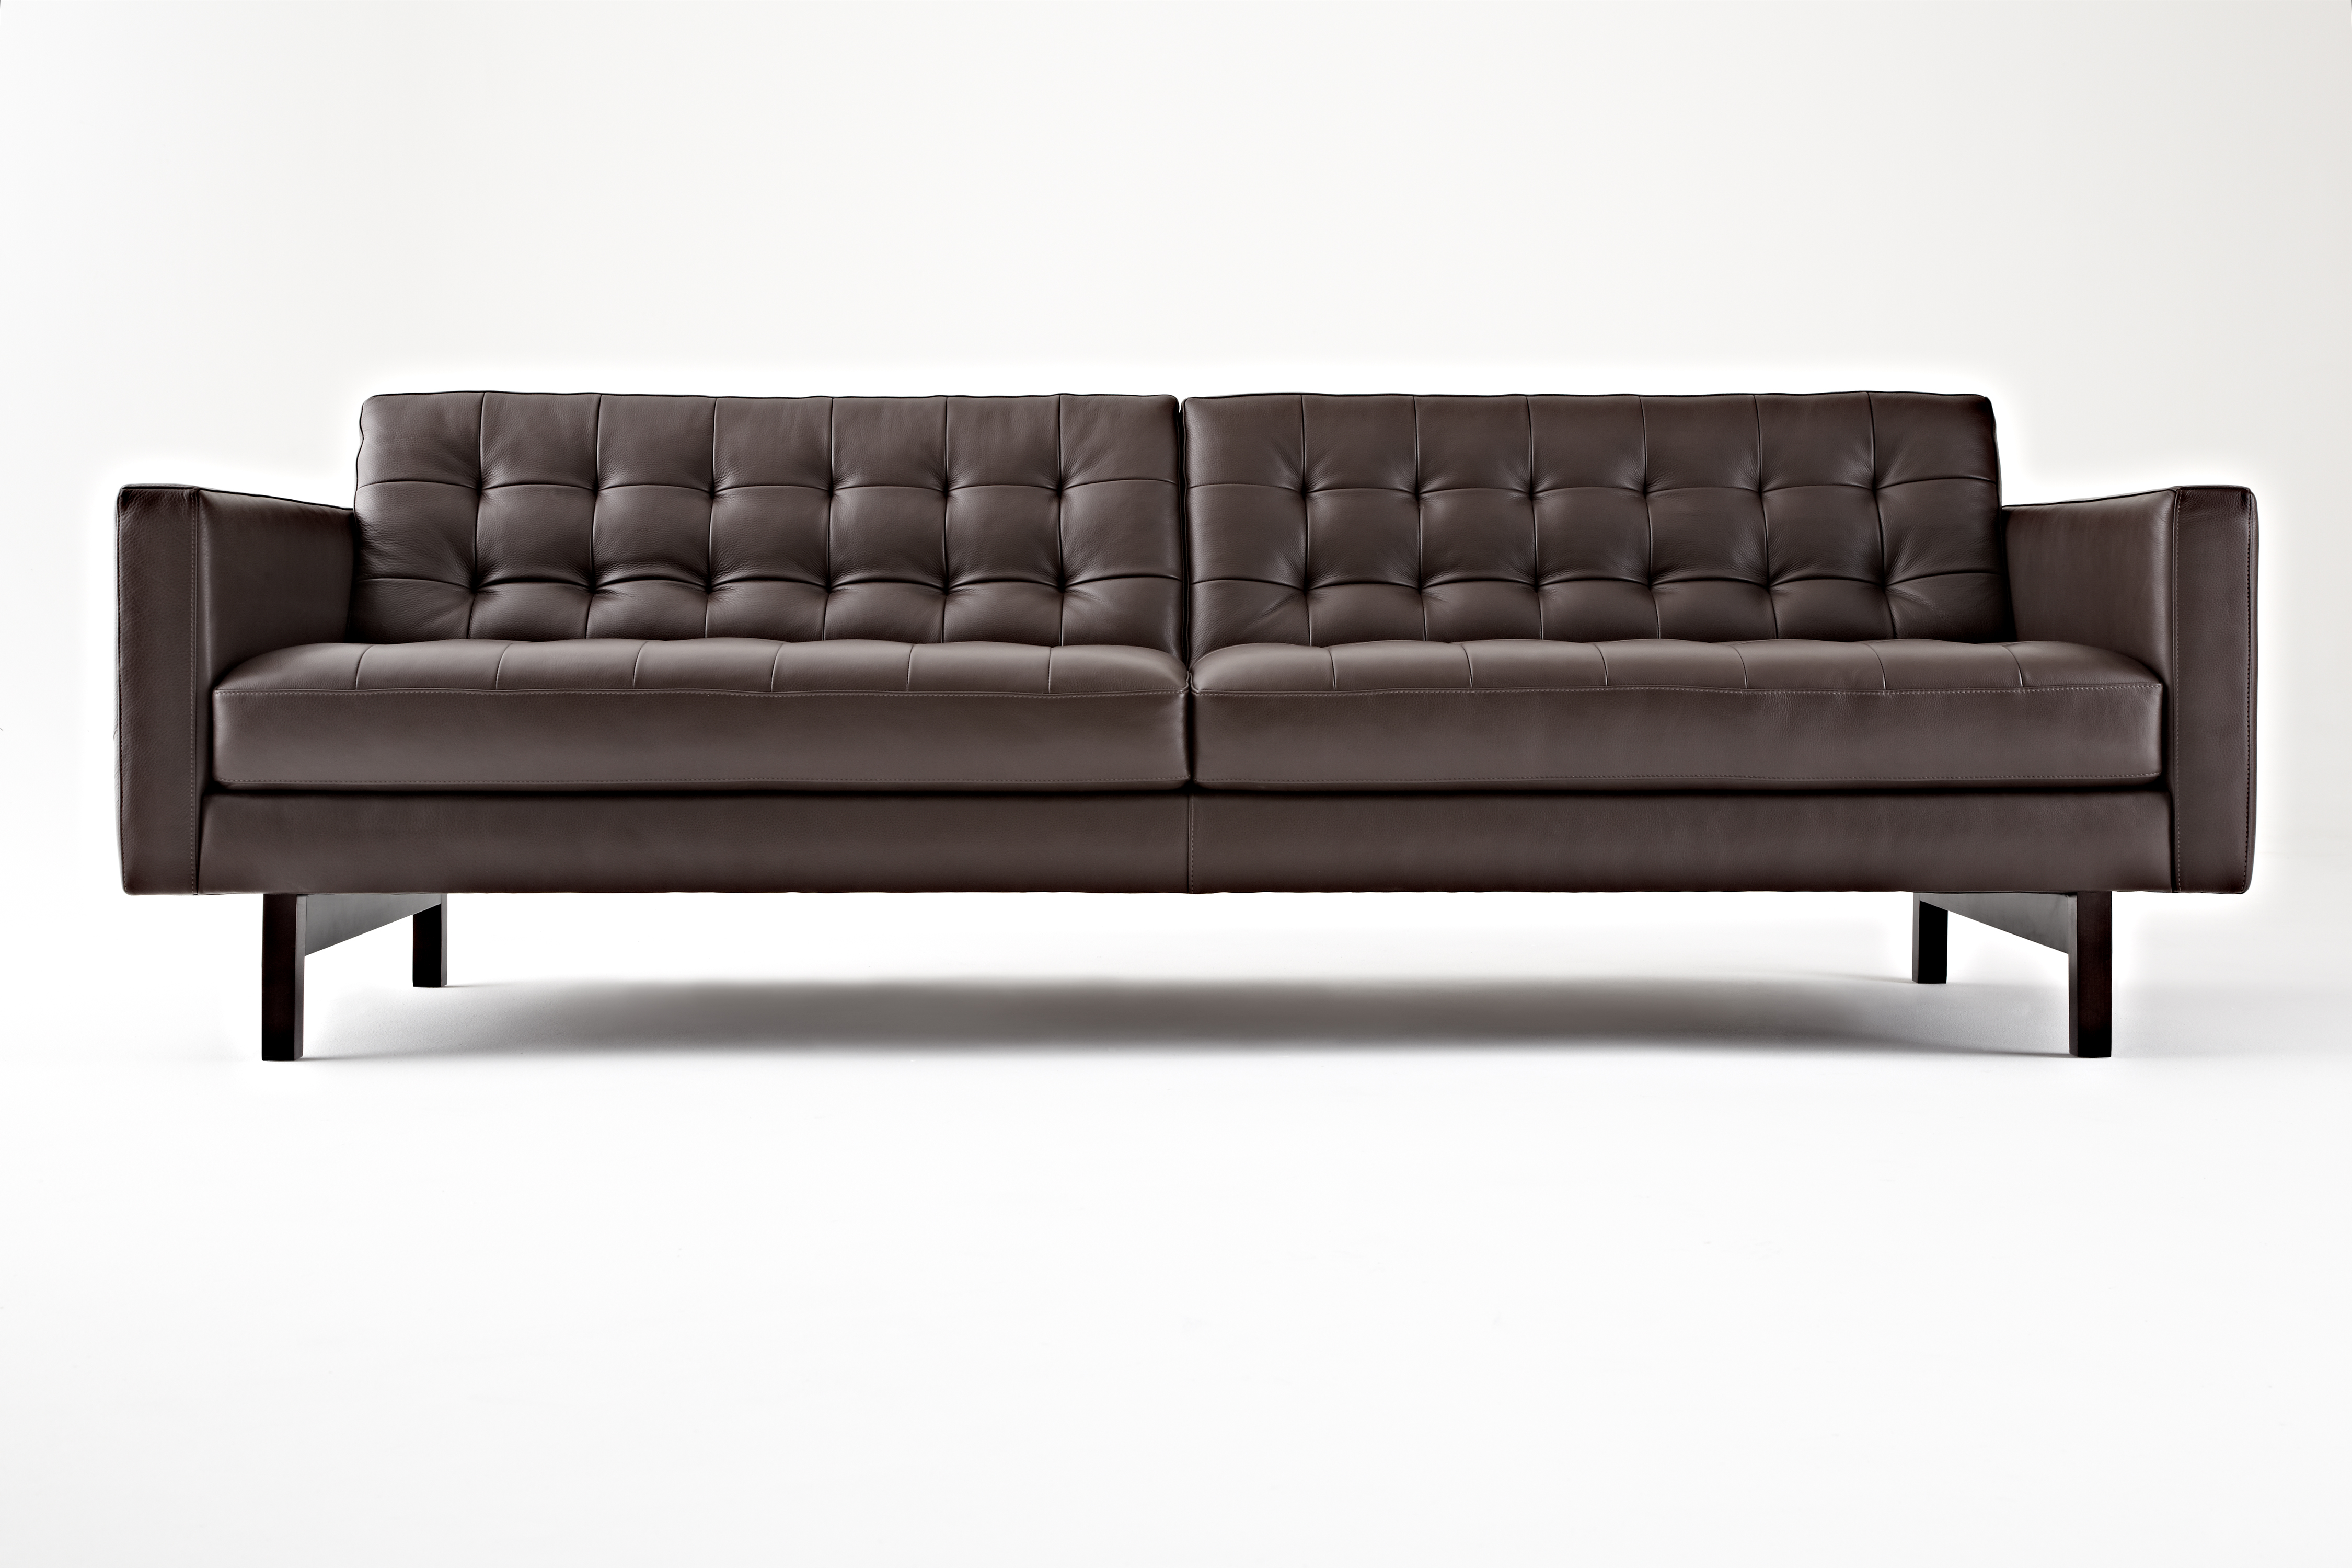 american leather sleep sofa how much would it cost to reupholster a uk reveals new generation comfort sleeper